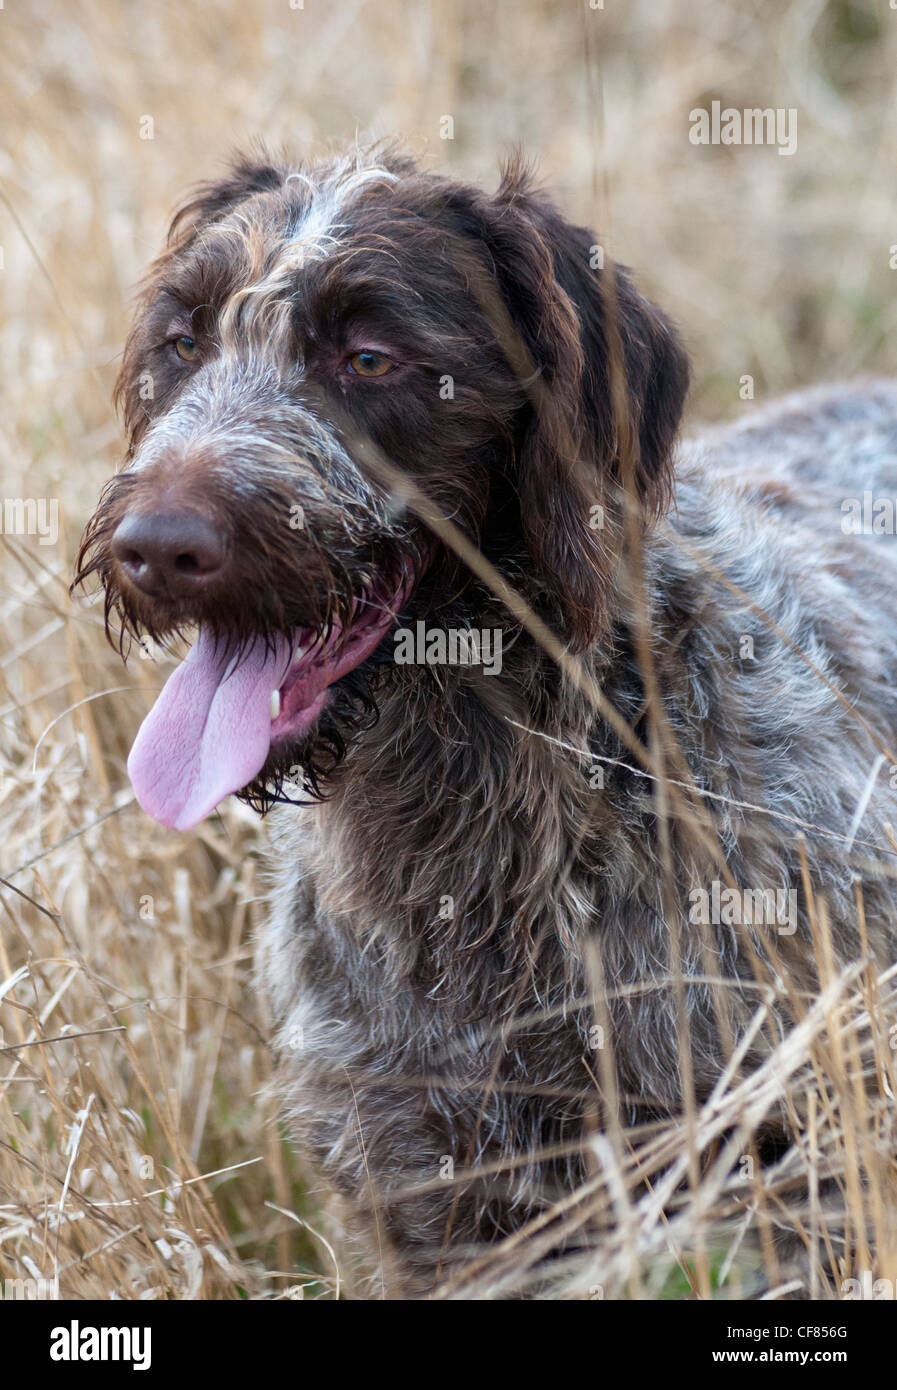 Portrait of a German Wired Haired Pointer dog - Stock Image